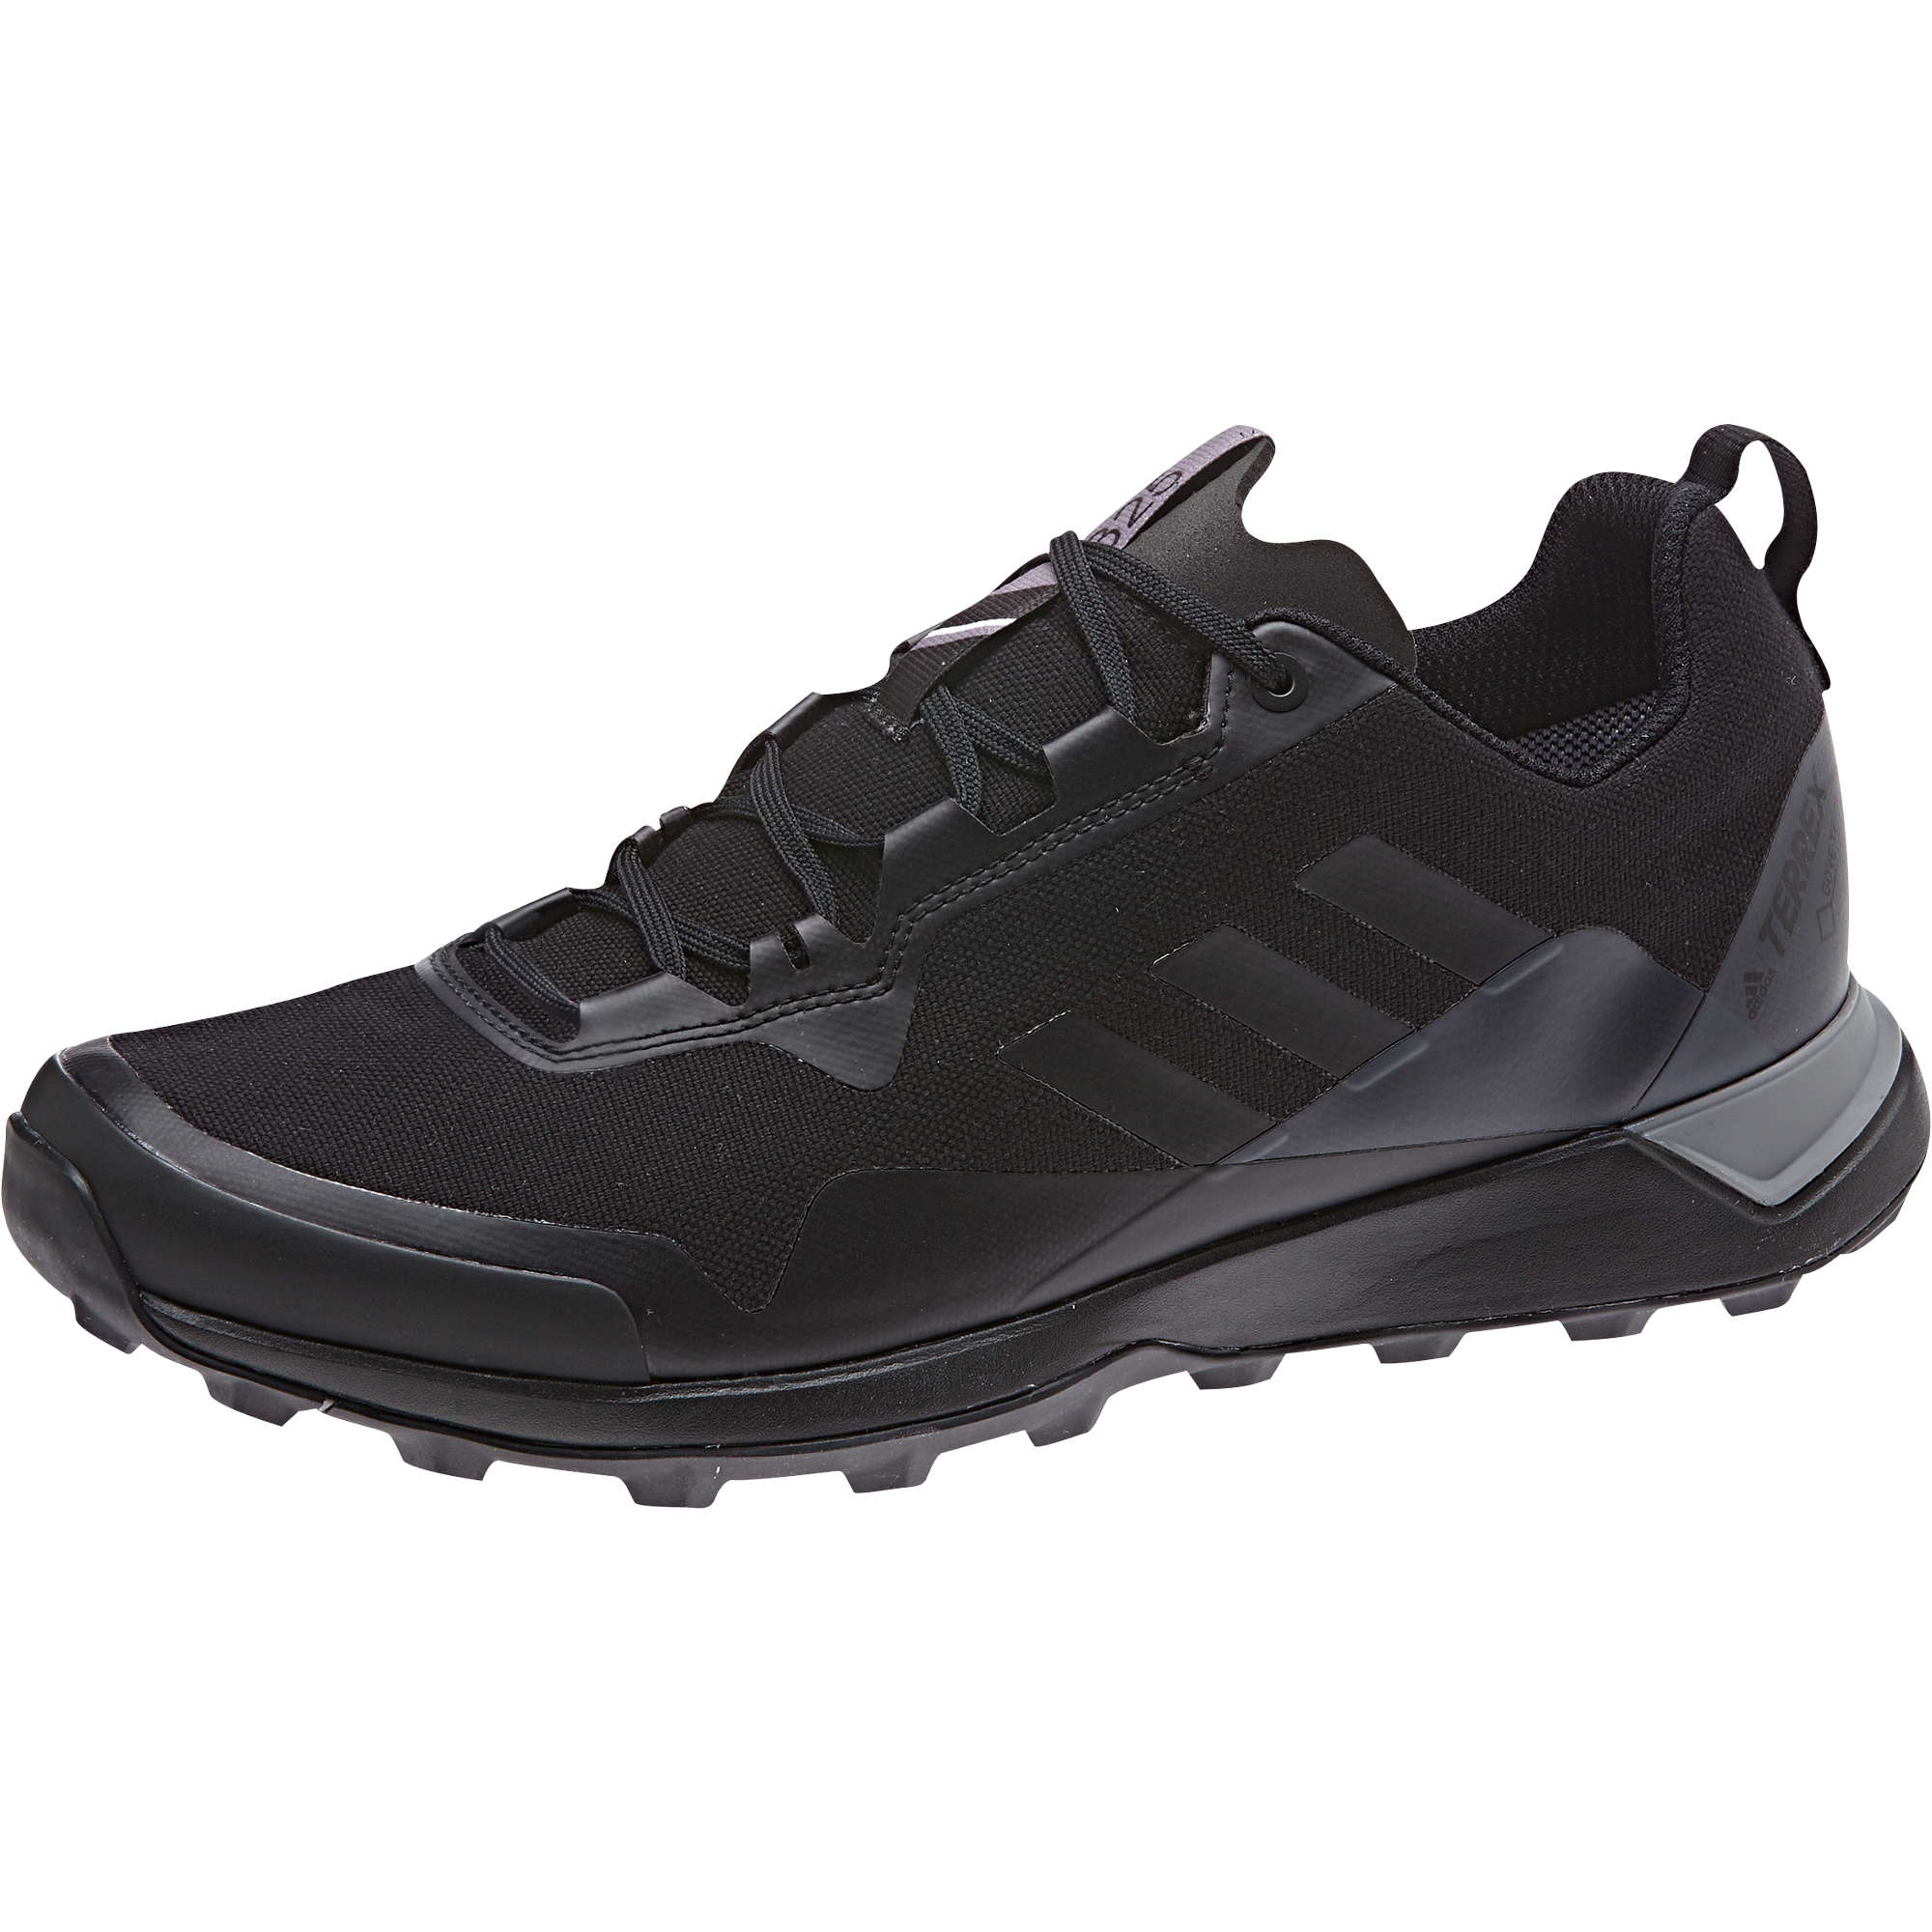 Purchase > adidas waterproof shoes gore tex, Up to 62% OFF